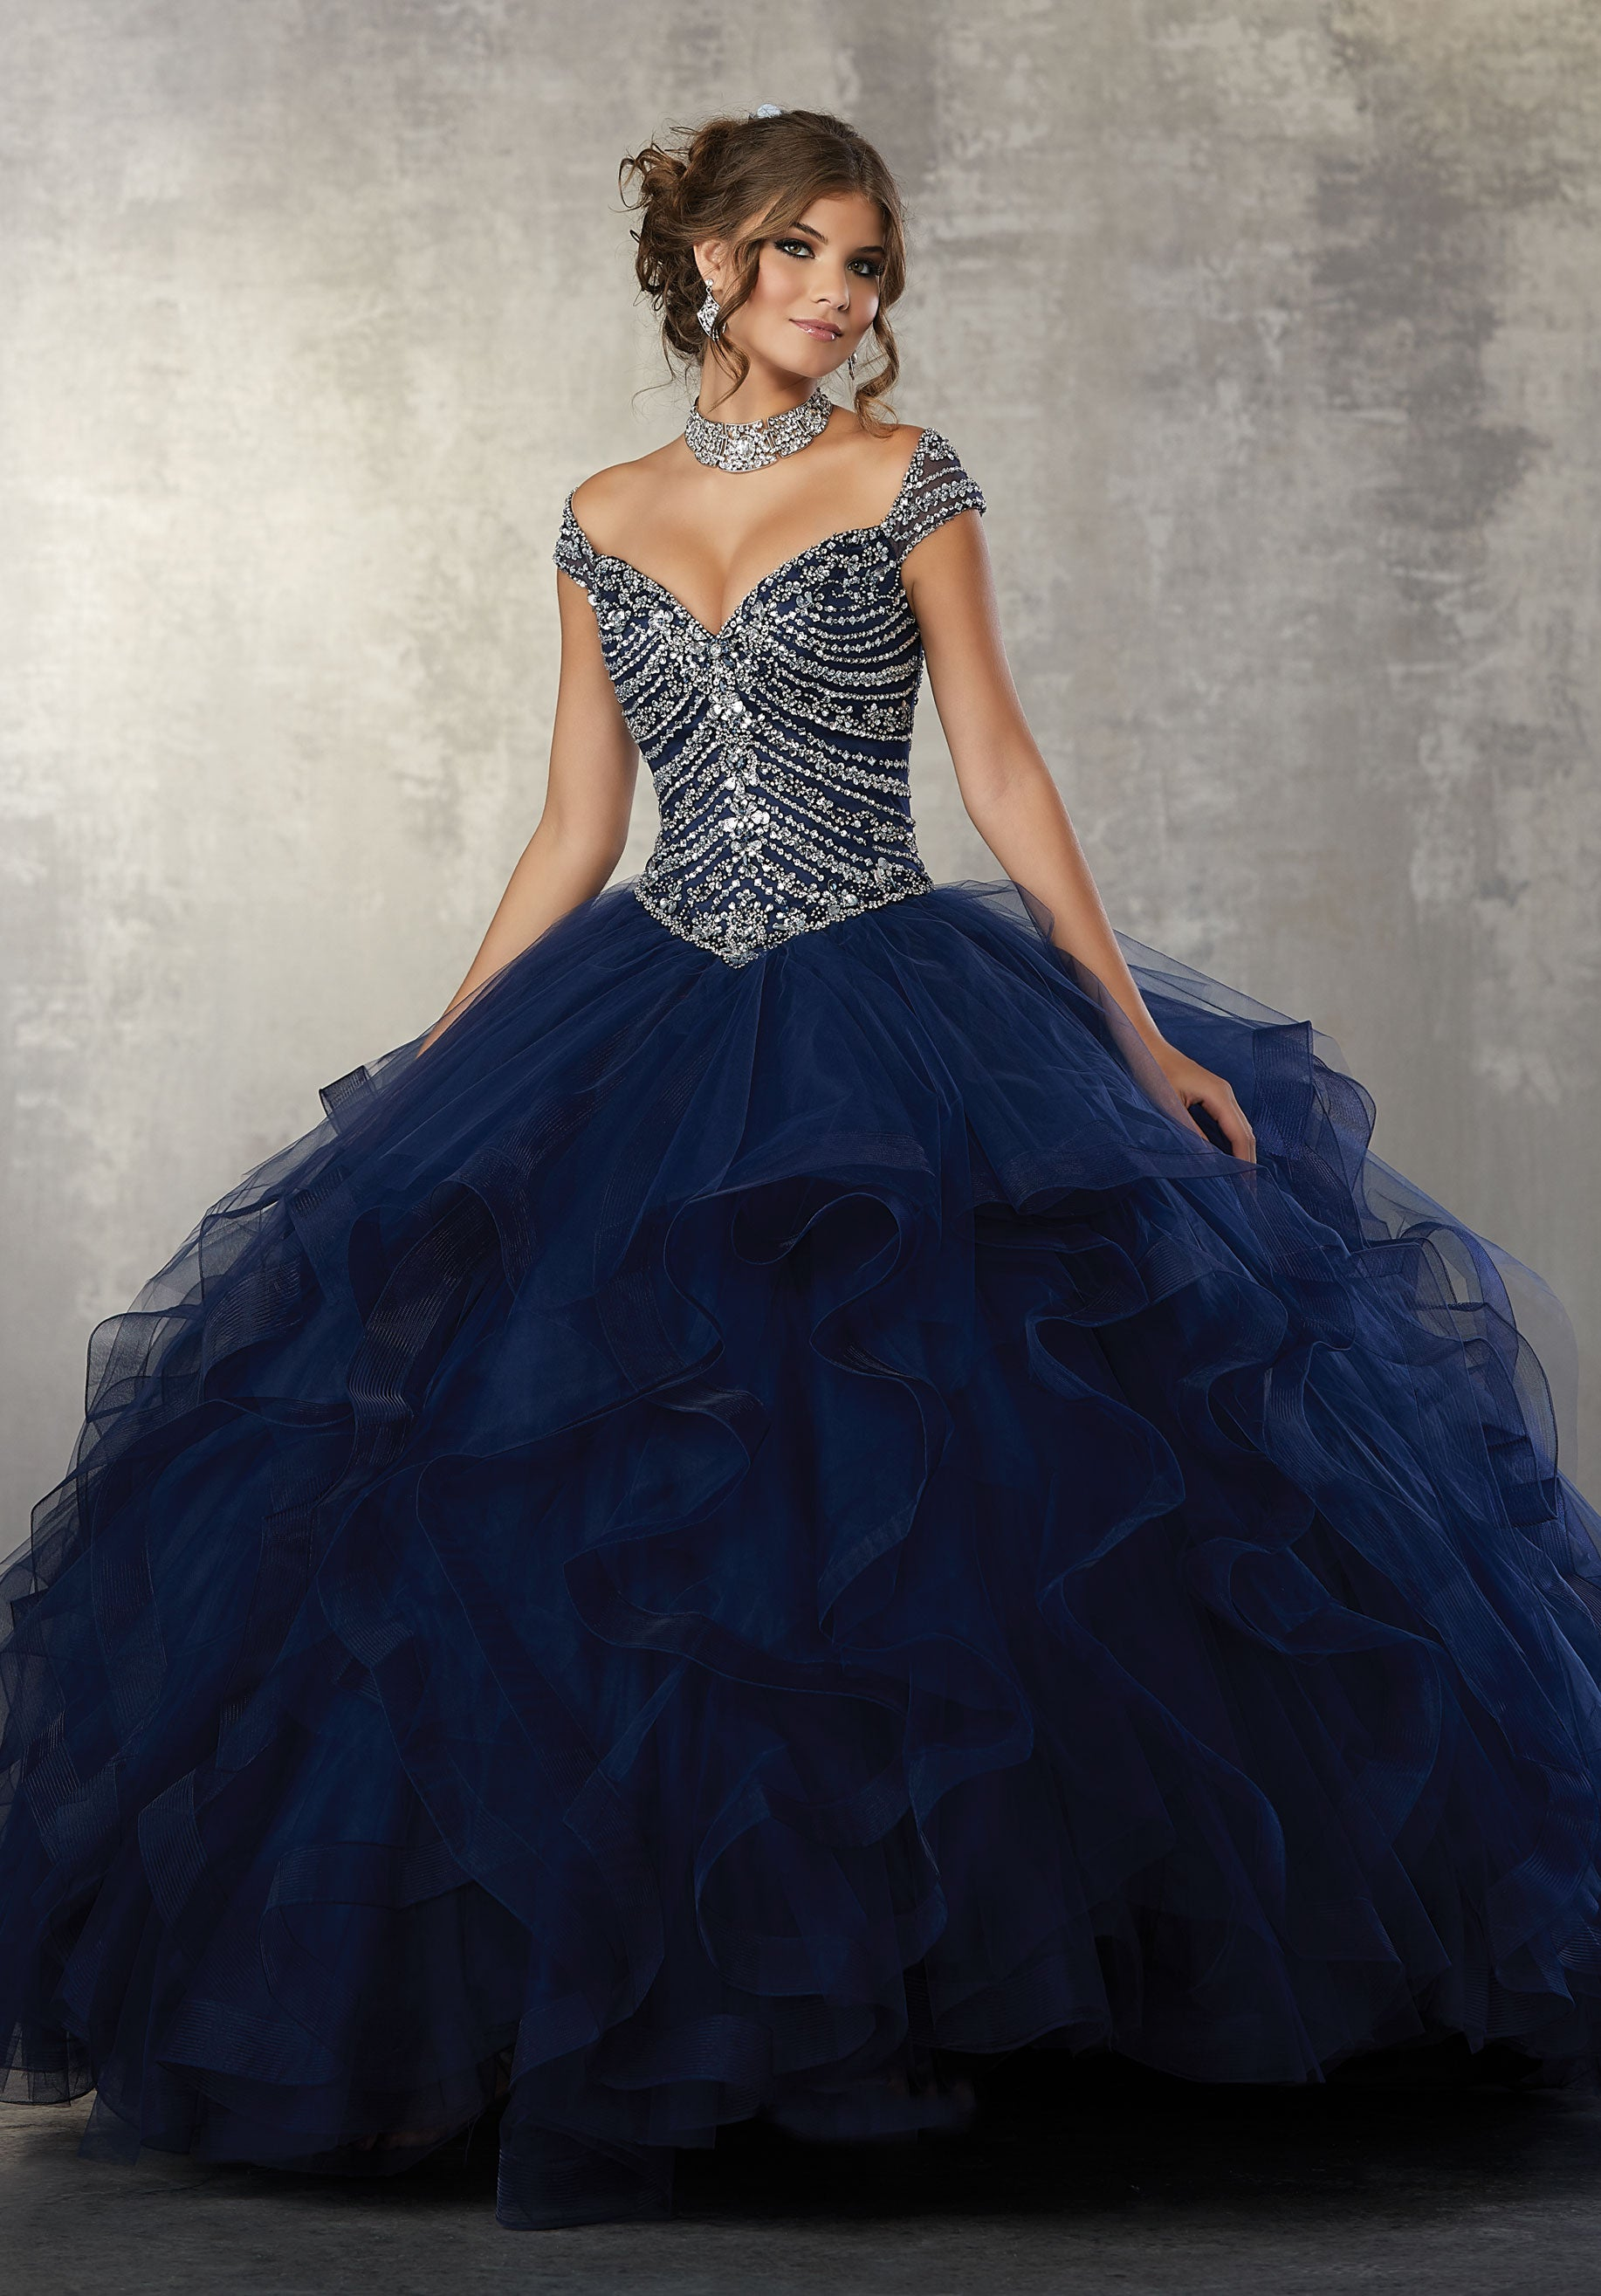 78051 Quinceanera Tulle Ballgown with a Jewel Beaded Bodice